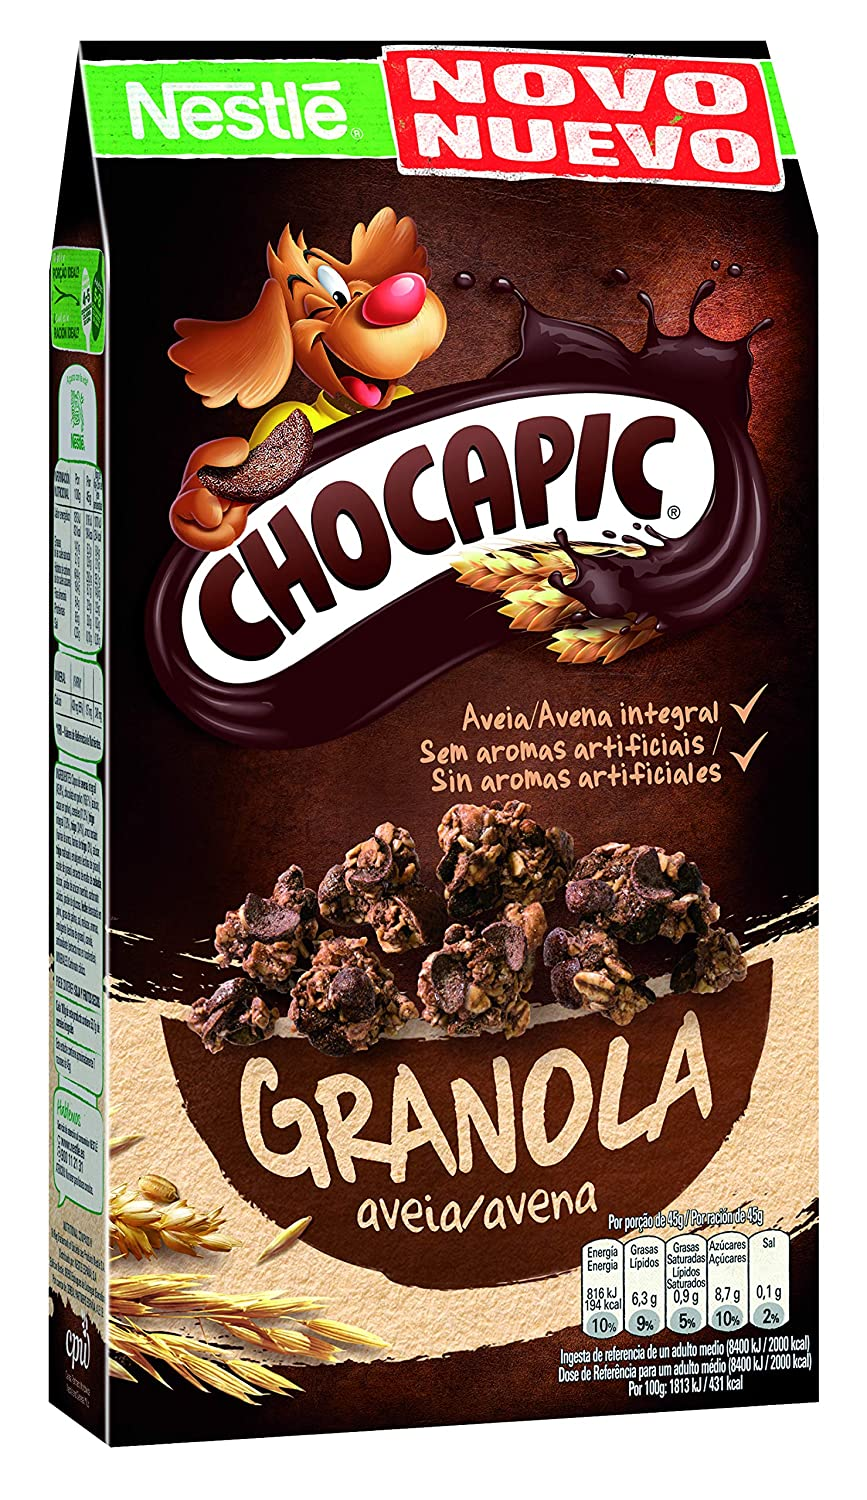 Cereales Nestlé Chocapic Granola - Copos de avena integral y trigo con chocolate: Amazon.es: Amazon Pantry